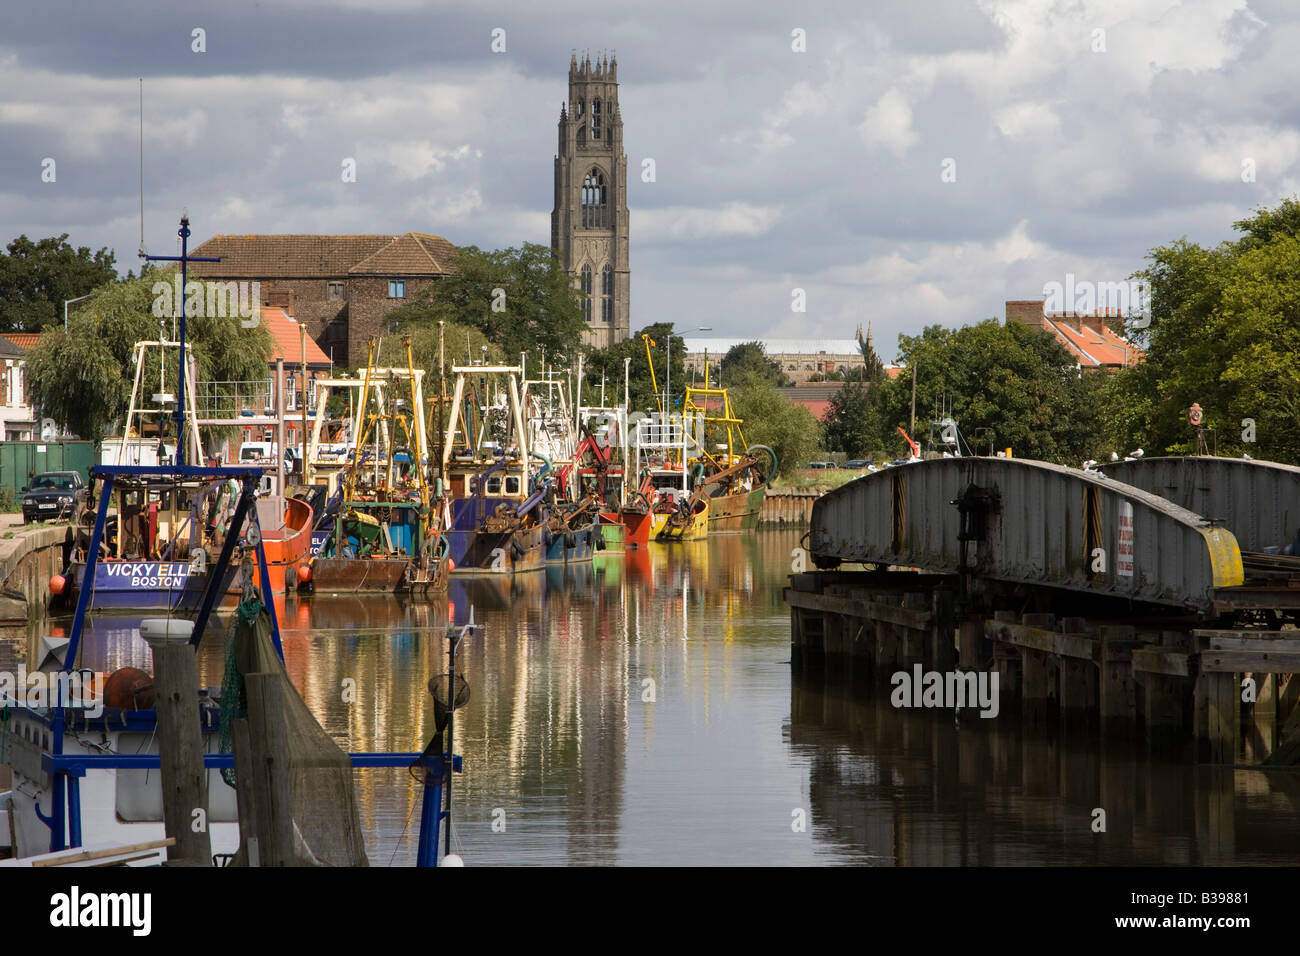 the haven boston riverside boats lincolnshire england - Stock Image